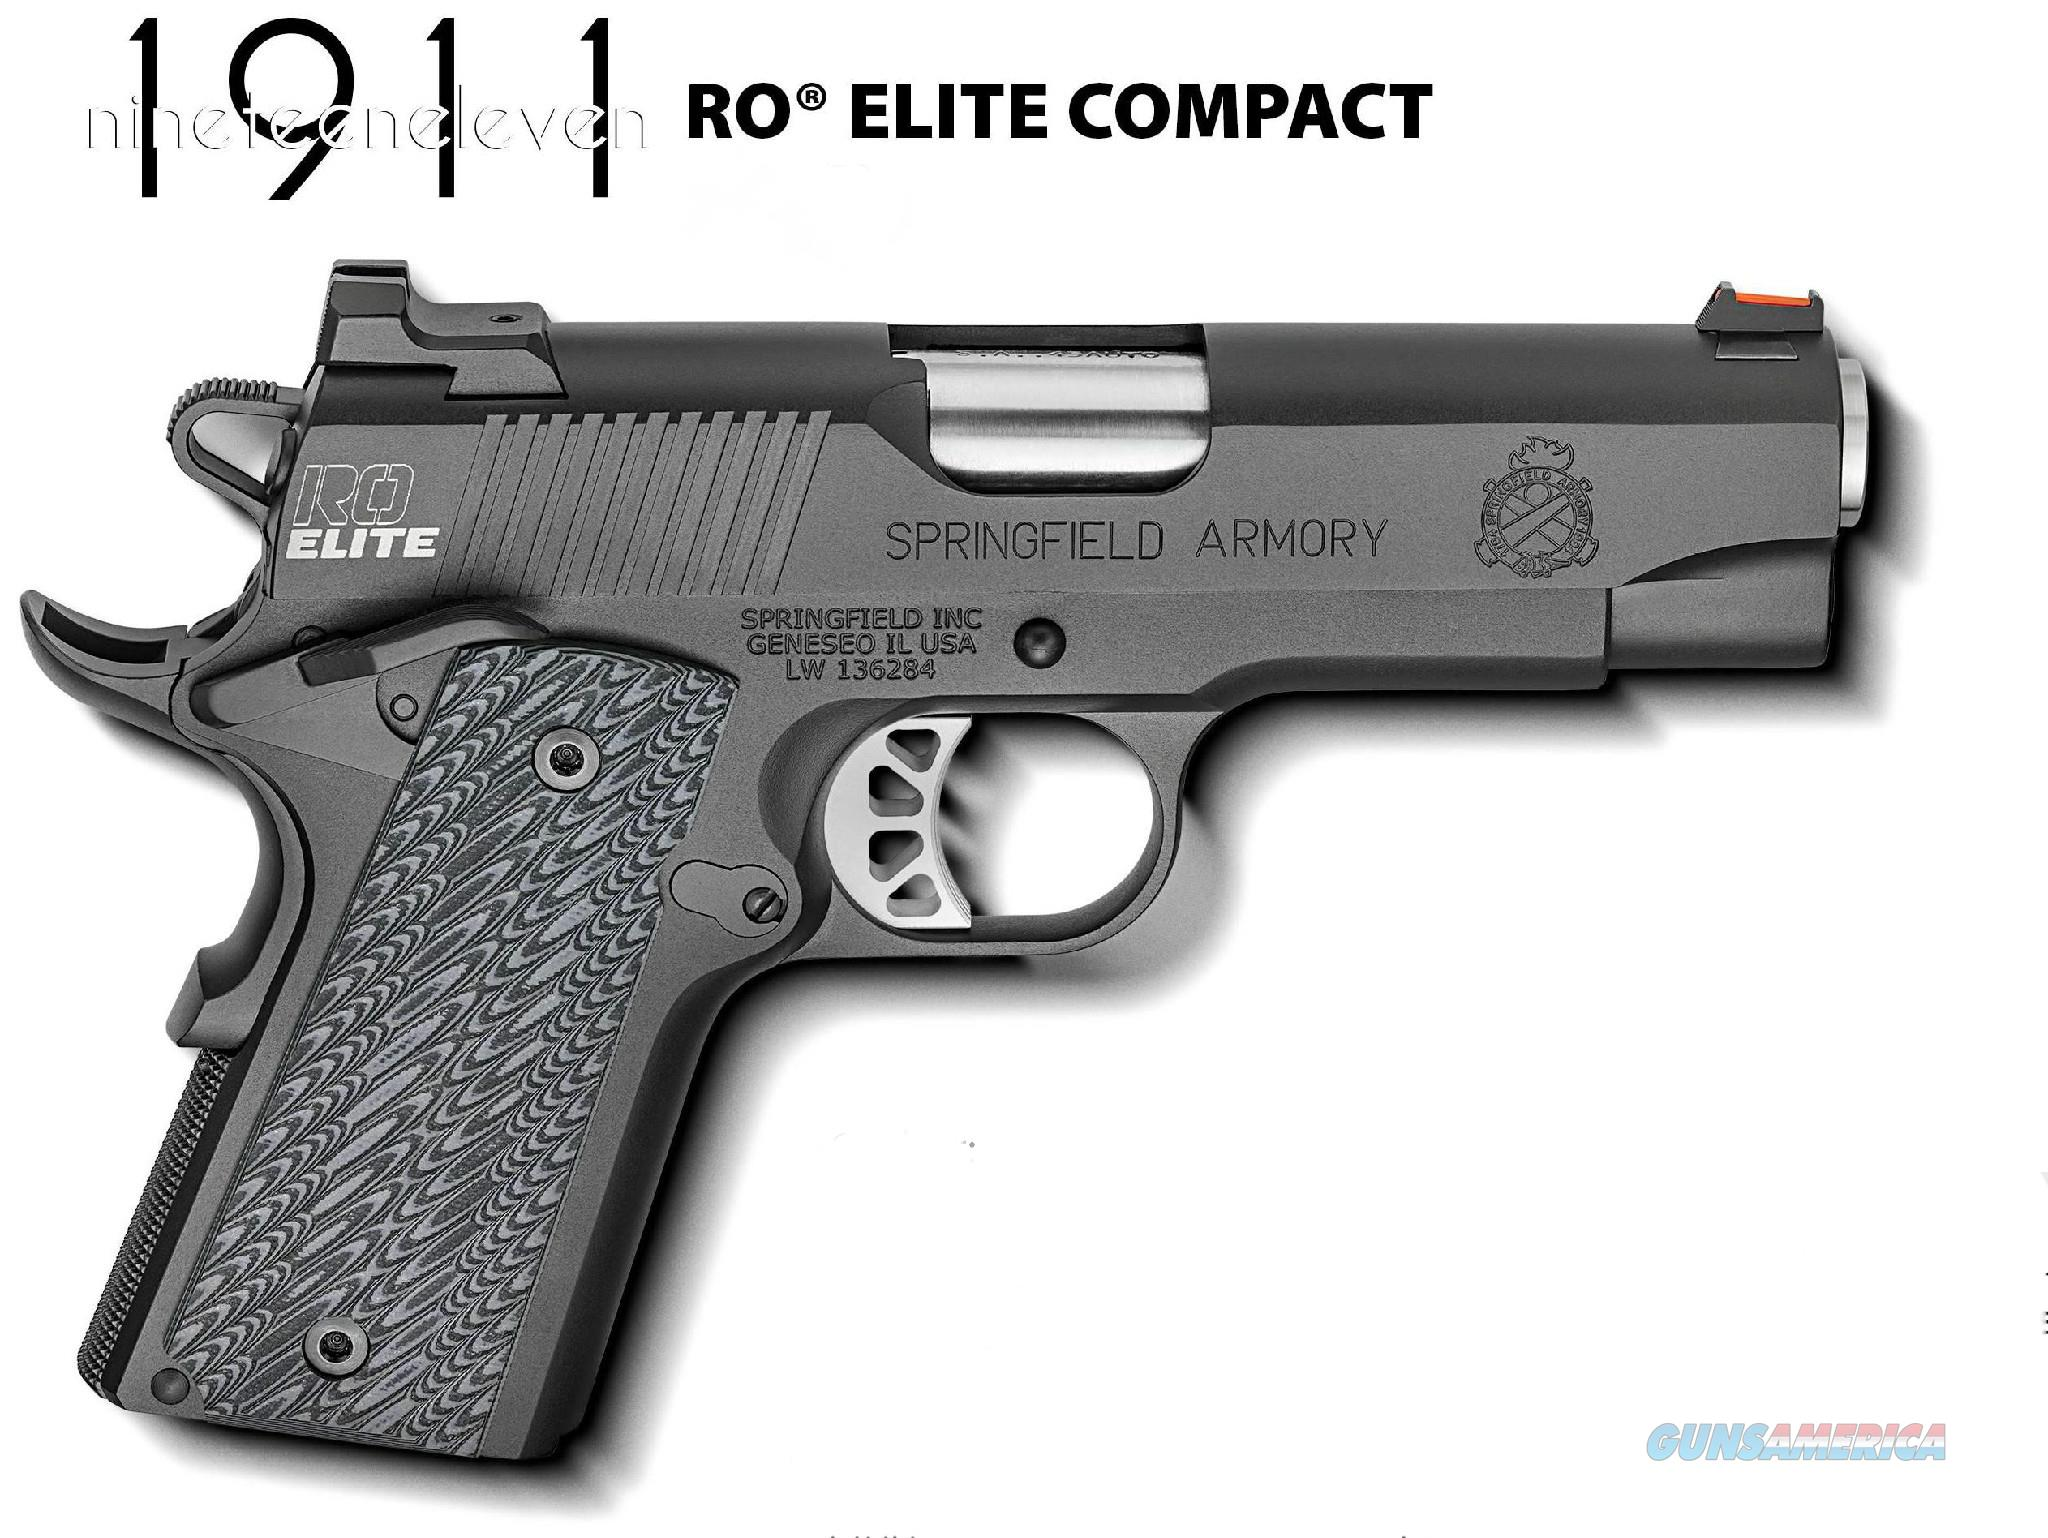 Springfield 1911 RO Elite LW Compact .45 acp FO G10 PI9126ER *NEW*  Guns > Pistols > Springfield Armory Pistols > 1911 Type